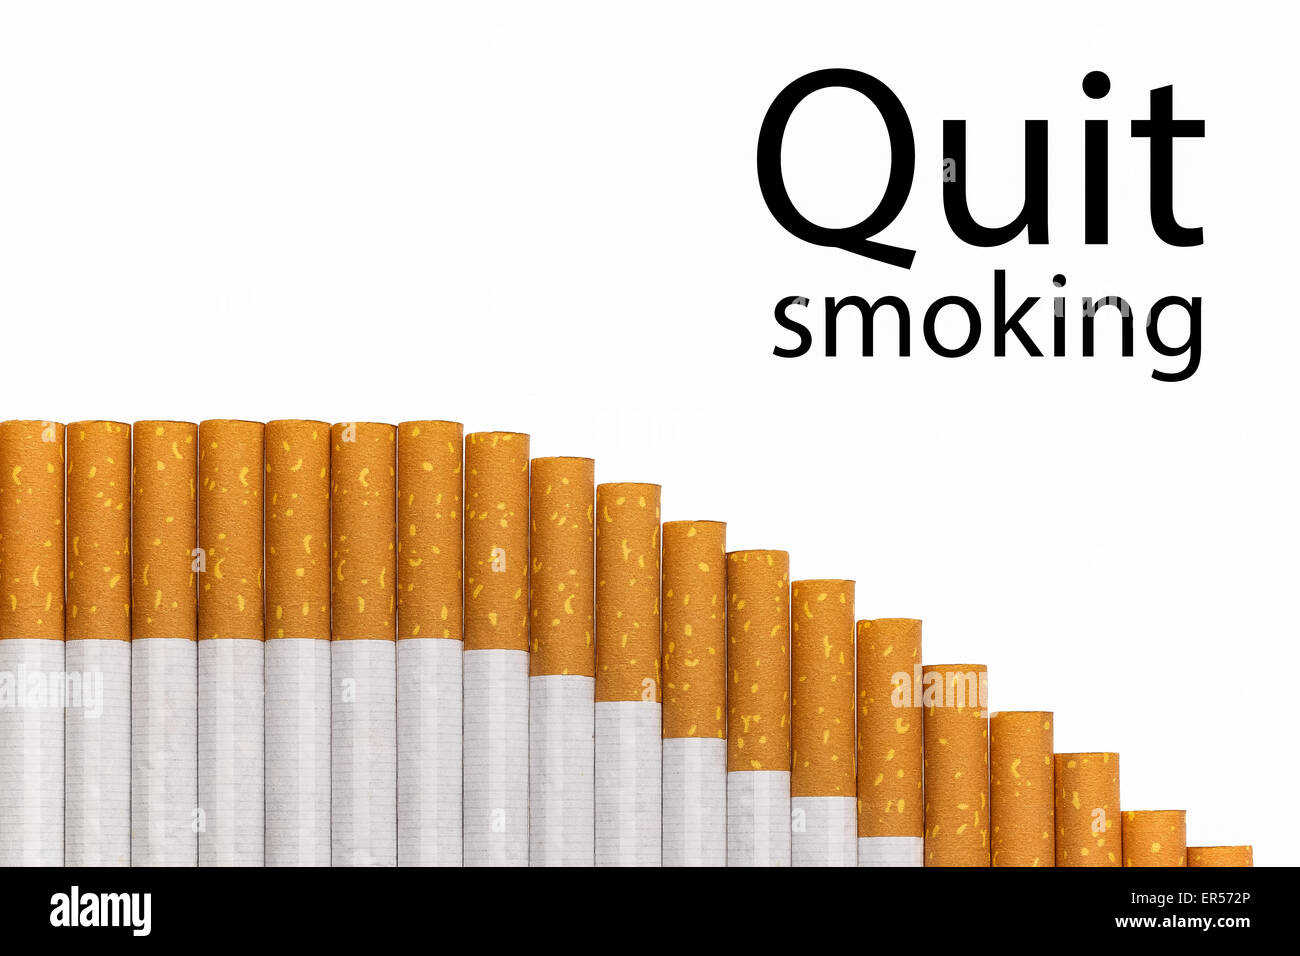 Quit smoking text with a graph of cigarettes, black text. - Stock Image